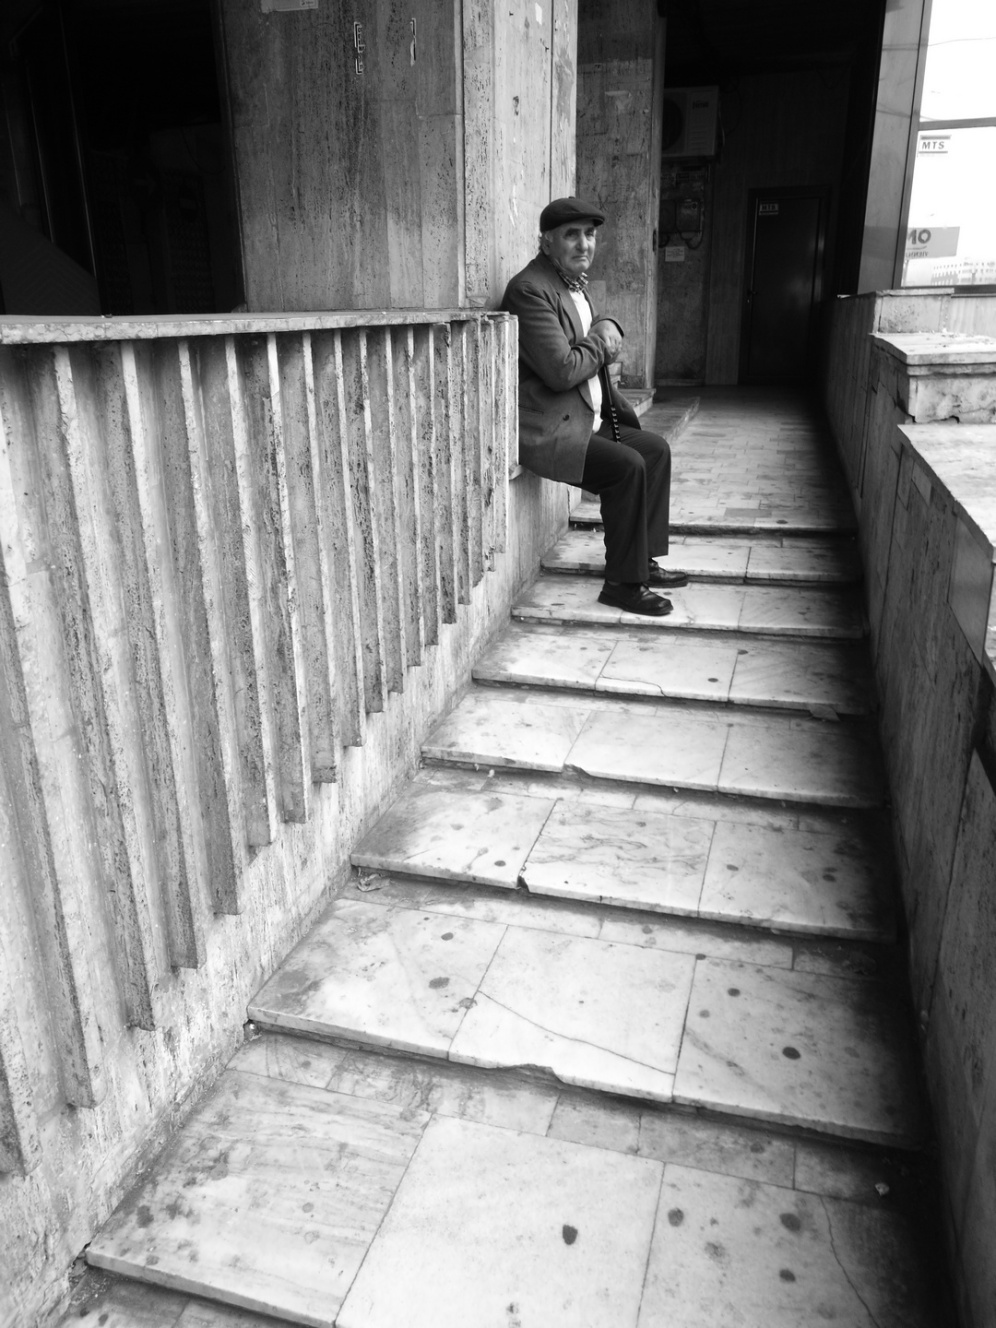 old guy waiting on the stairs